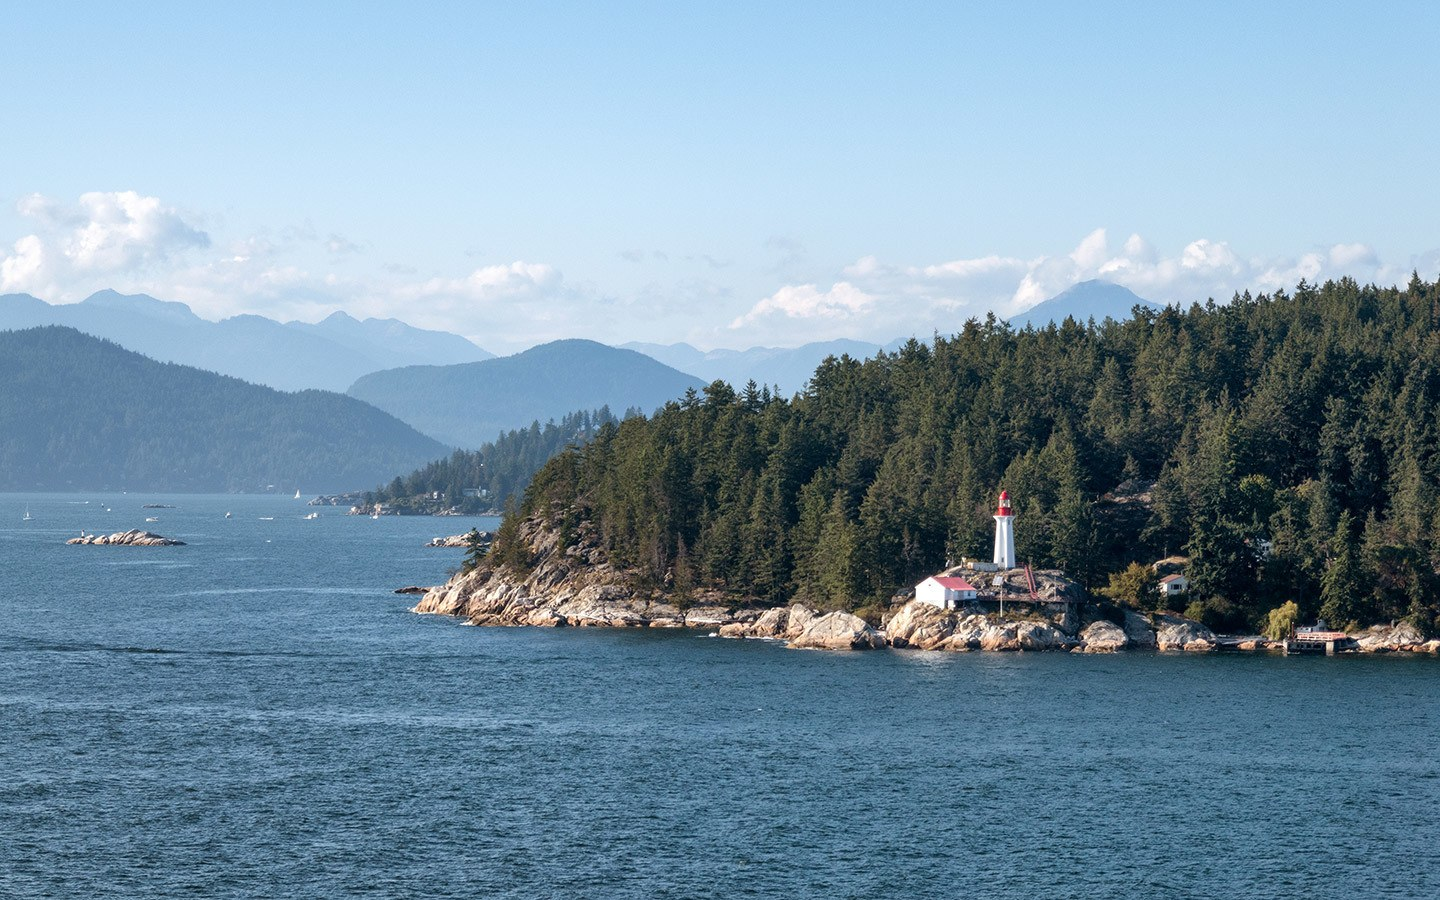 Sailing along the coastline outside Vancouver